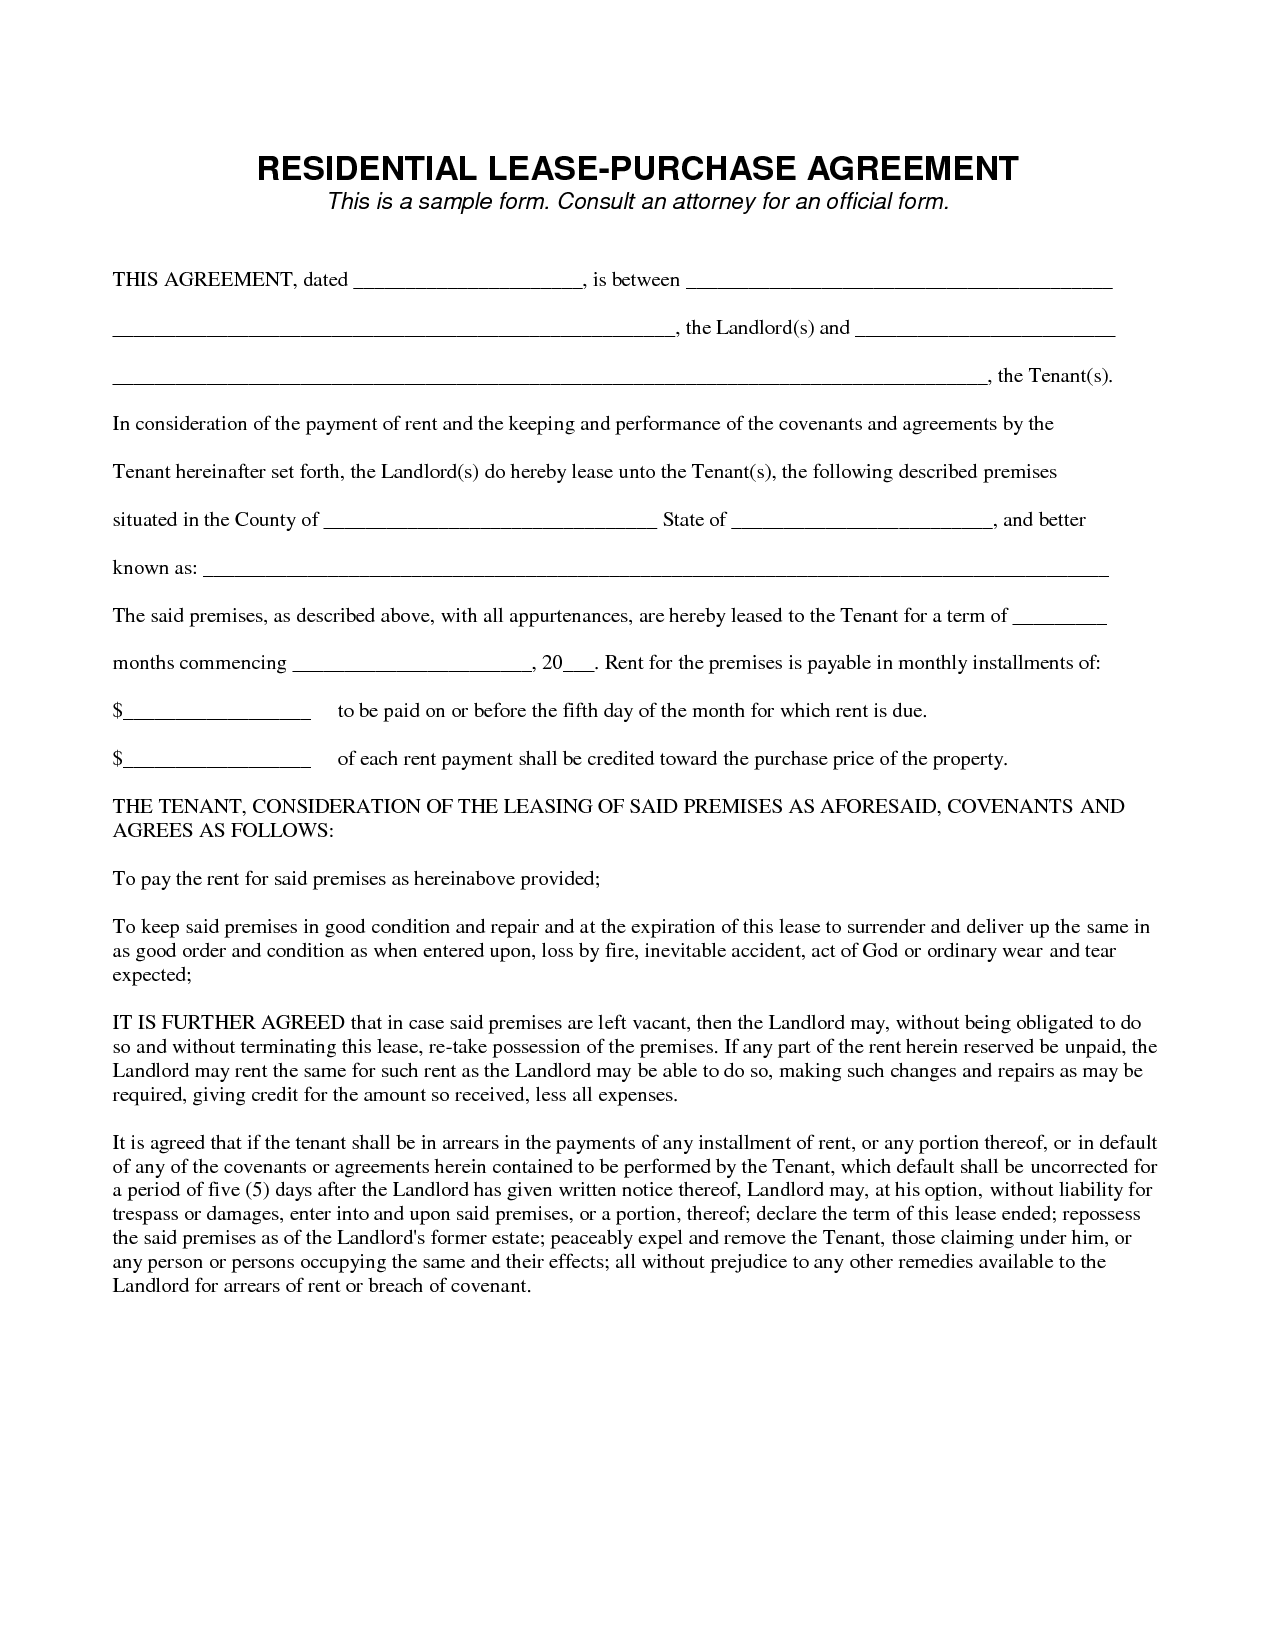 Legal Agreement Contract Free Printable Documents Rental Agreement Templates Lease Agreement Purchase Agreement